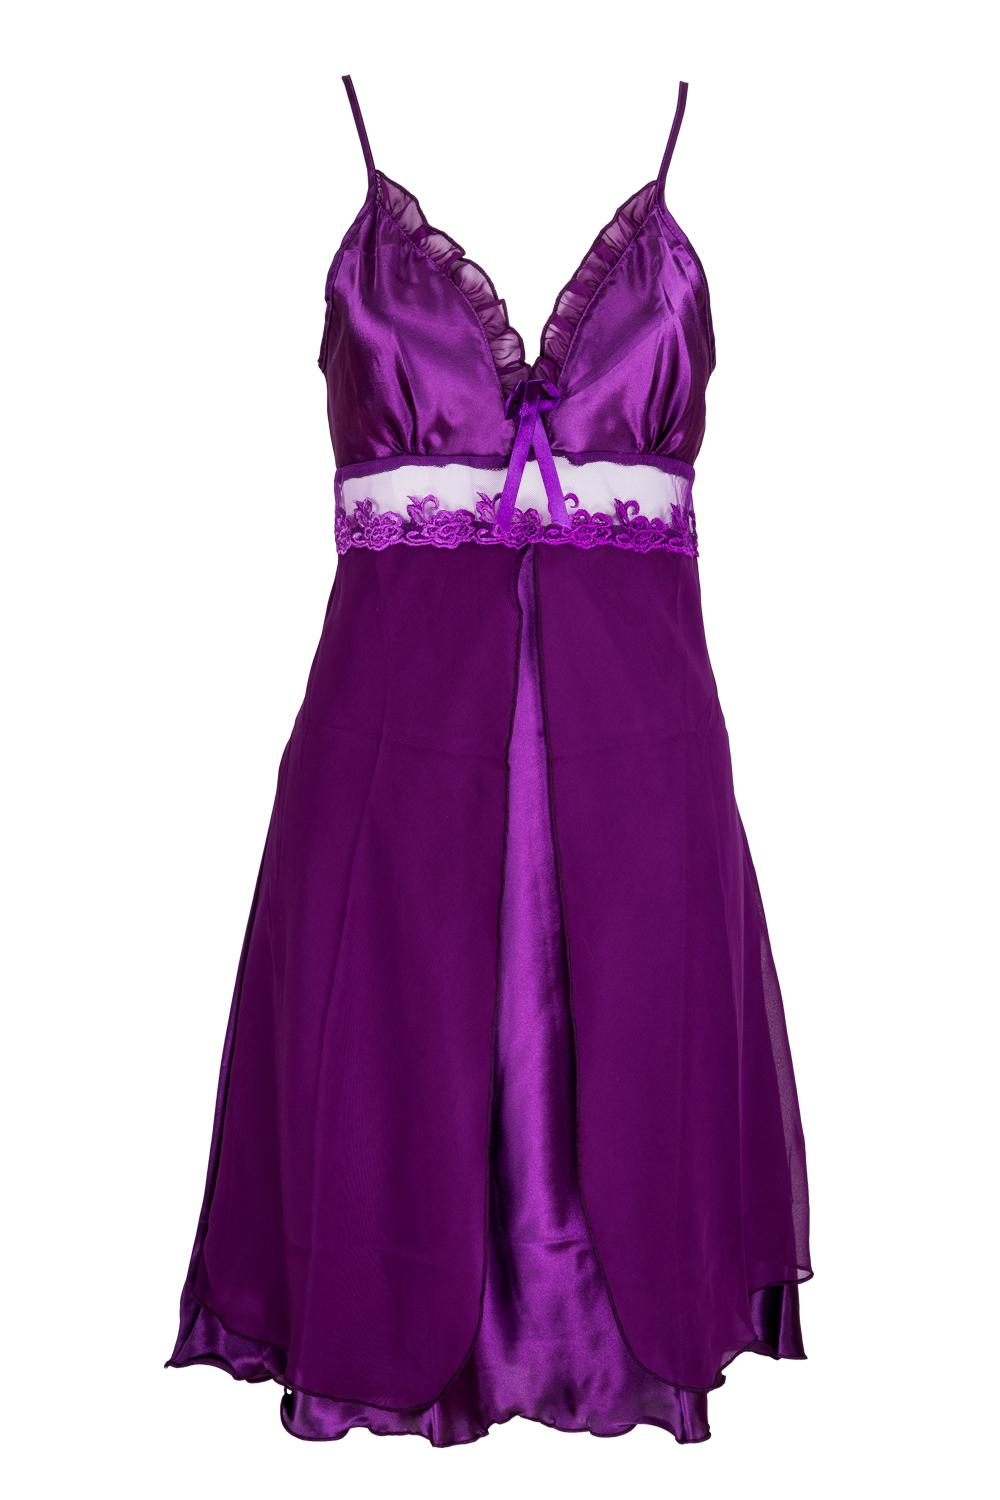 fe39cdb649e8 2019 Wholesale 2017 NEW Women S Lace Lingerie Nightgown Babydoll Strap Sleepwear  Purple From Oott